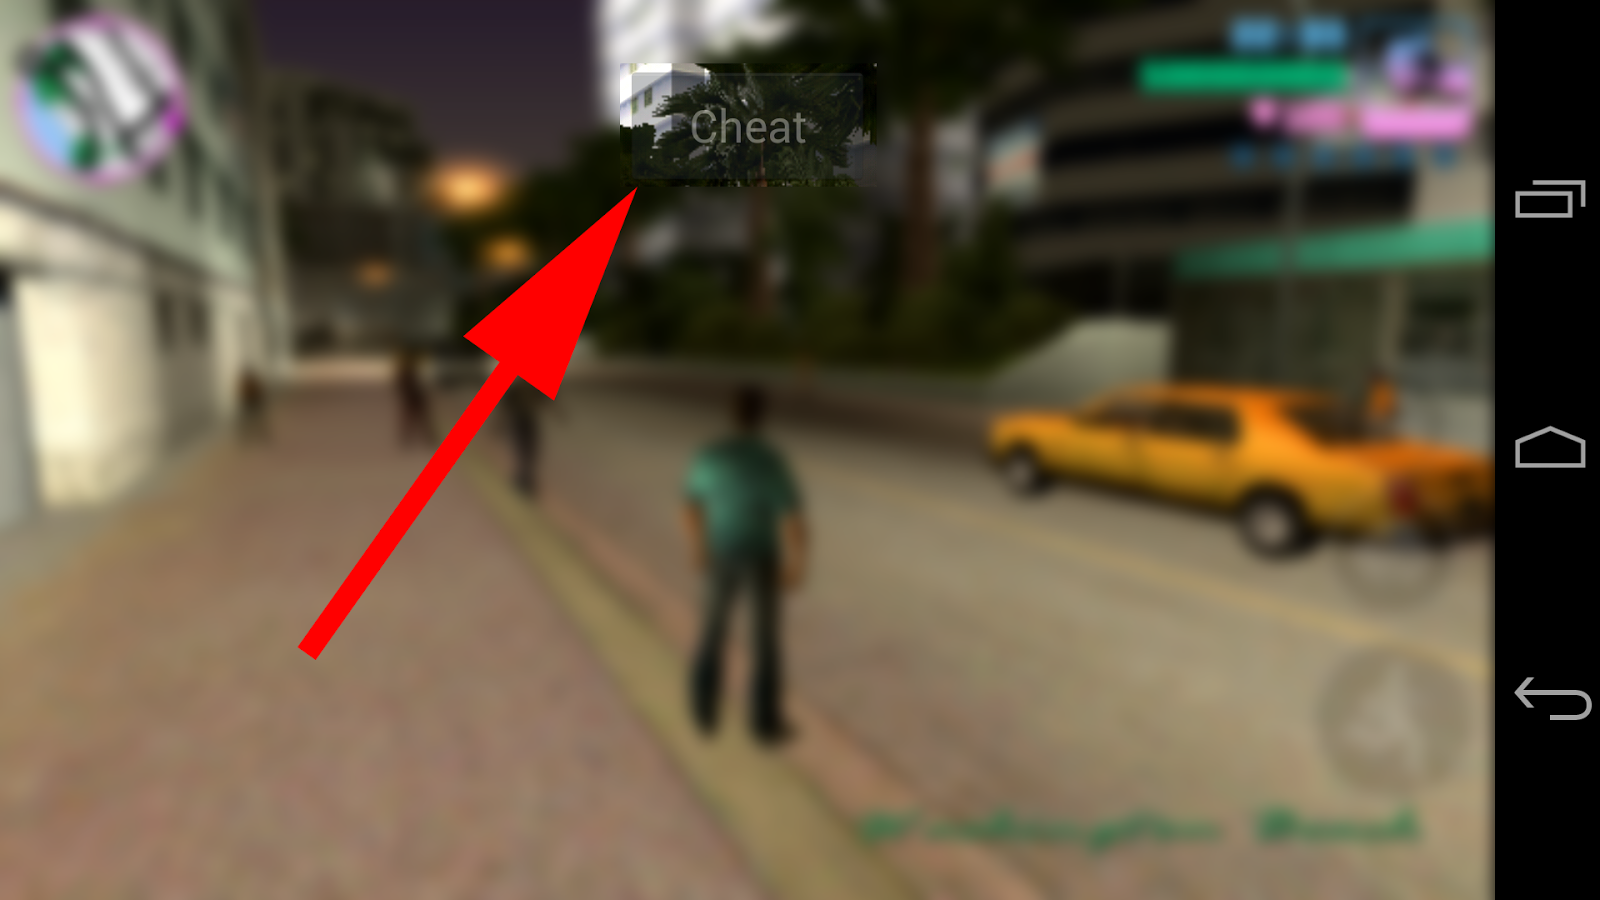 Jcheater vice city edition apk android free download.